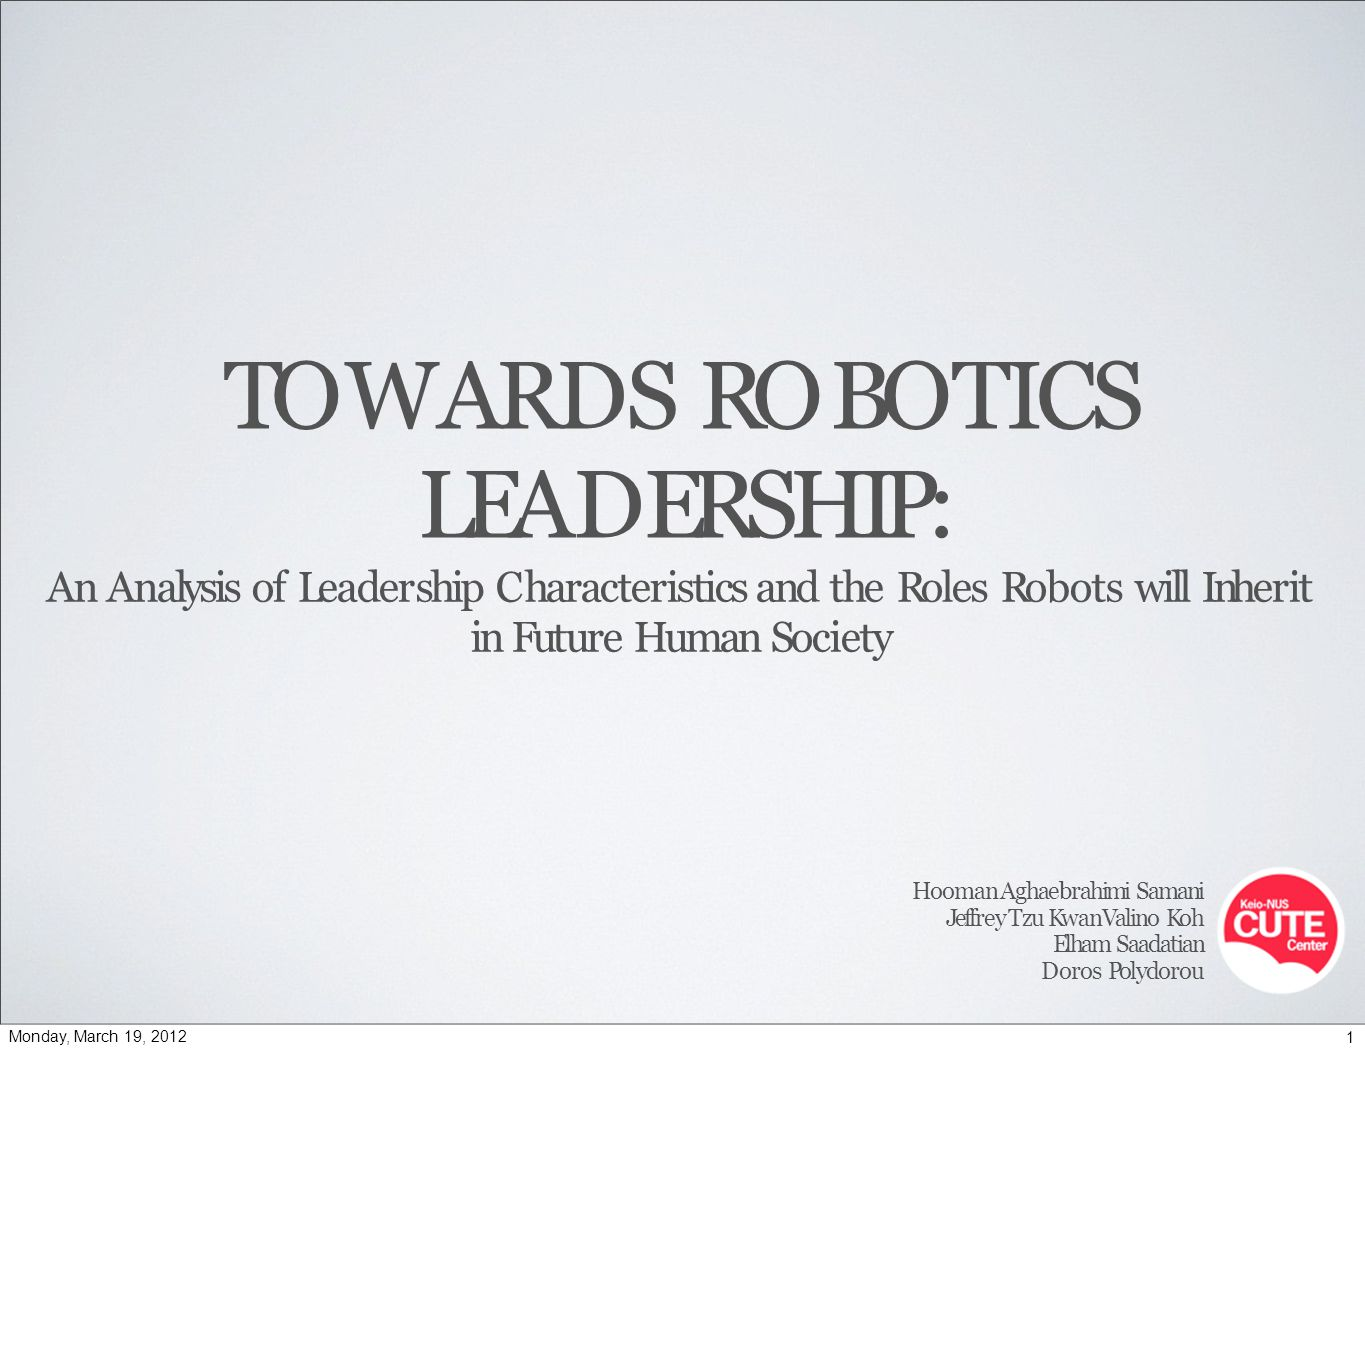 TOWARDS ROBOTICS LEADERSHIP: An Analysis of Leadership Characteristics and the Roles Robots will Inherit in Future Human Society Hooman Aghaebrahimi Samani Jeffrey Tzu Kwan Valino Koh Elham Saadatian Doros Polydorou 1Monday, March 19, 2012